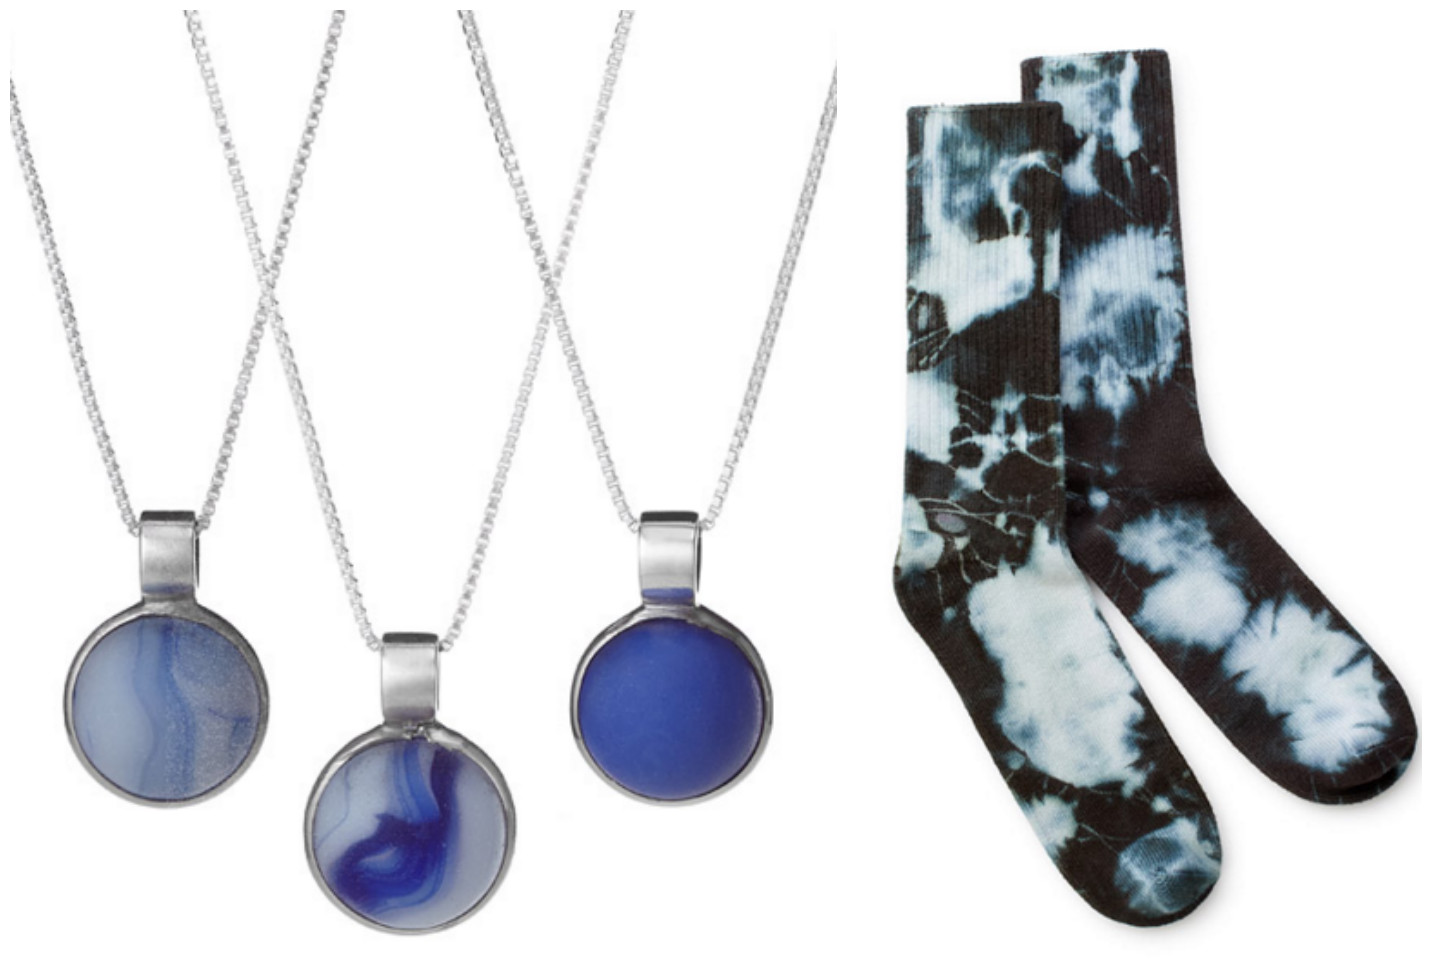 Beach Marble Necklace & Tie Dye Socks| UncommonGoods